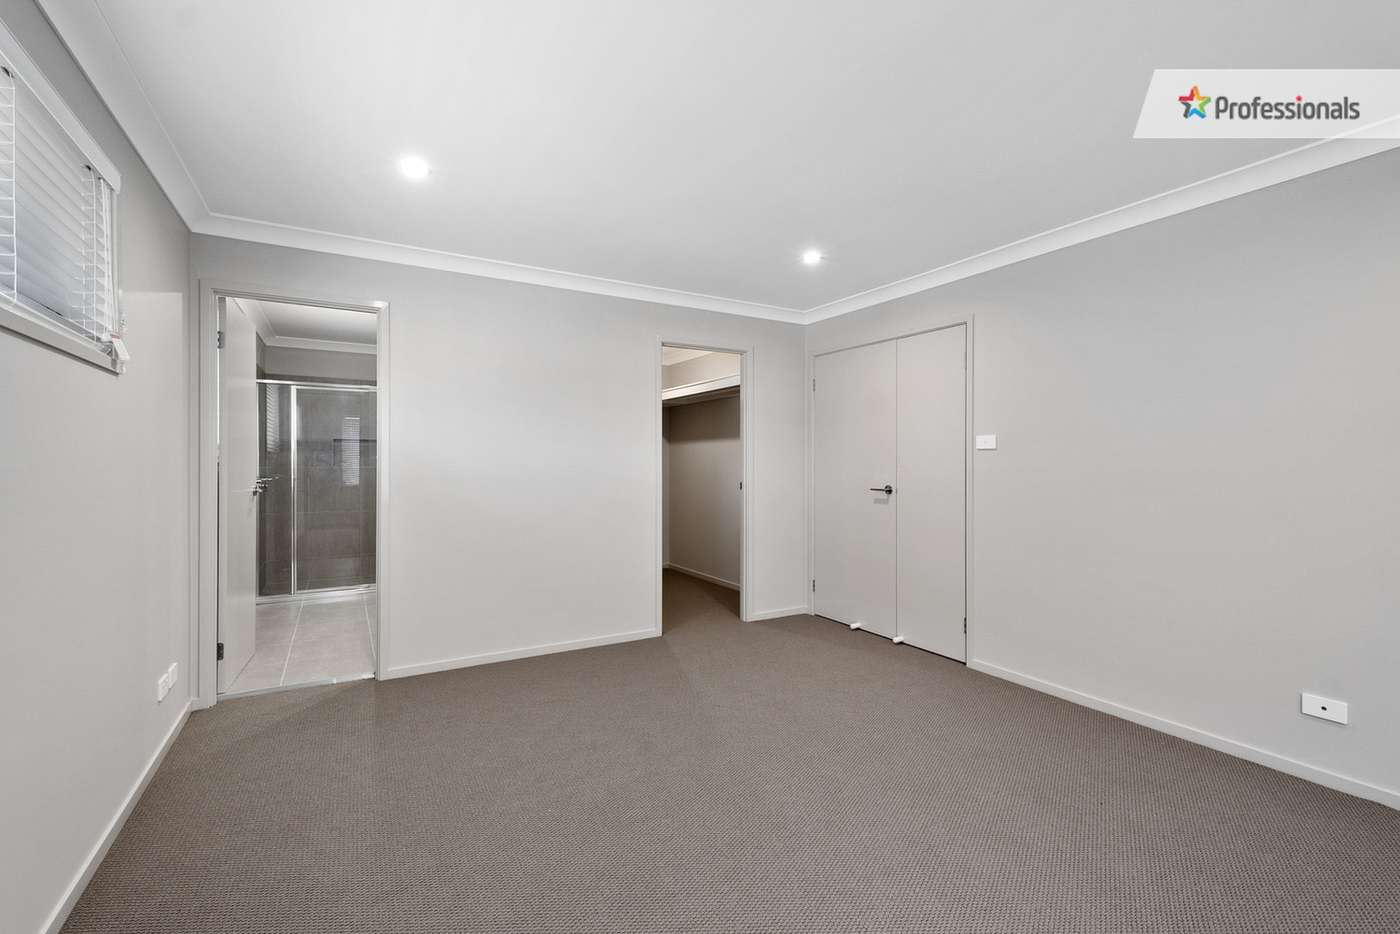 Sixth view of Homely house listing, 3 Corvus Way, Box Hill NSW 2765